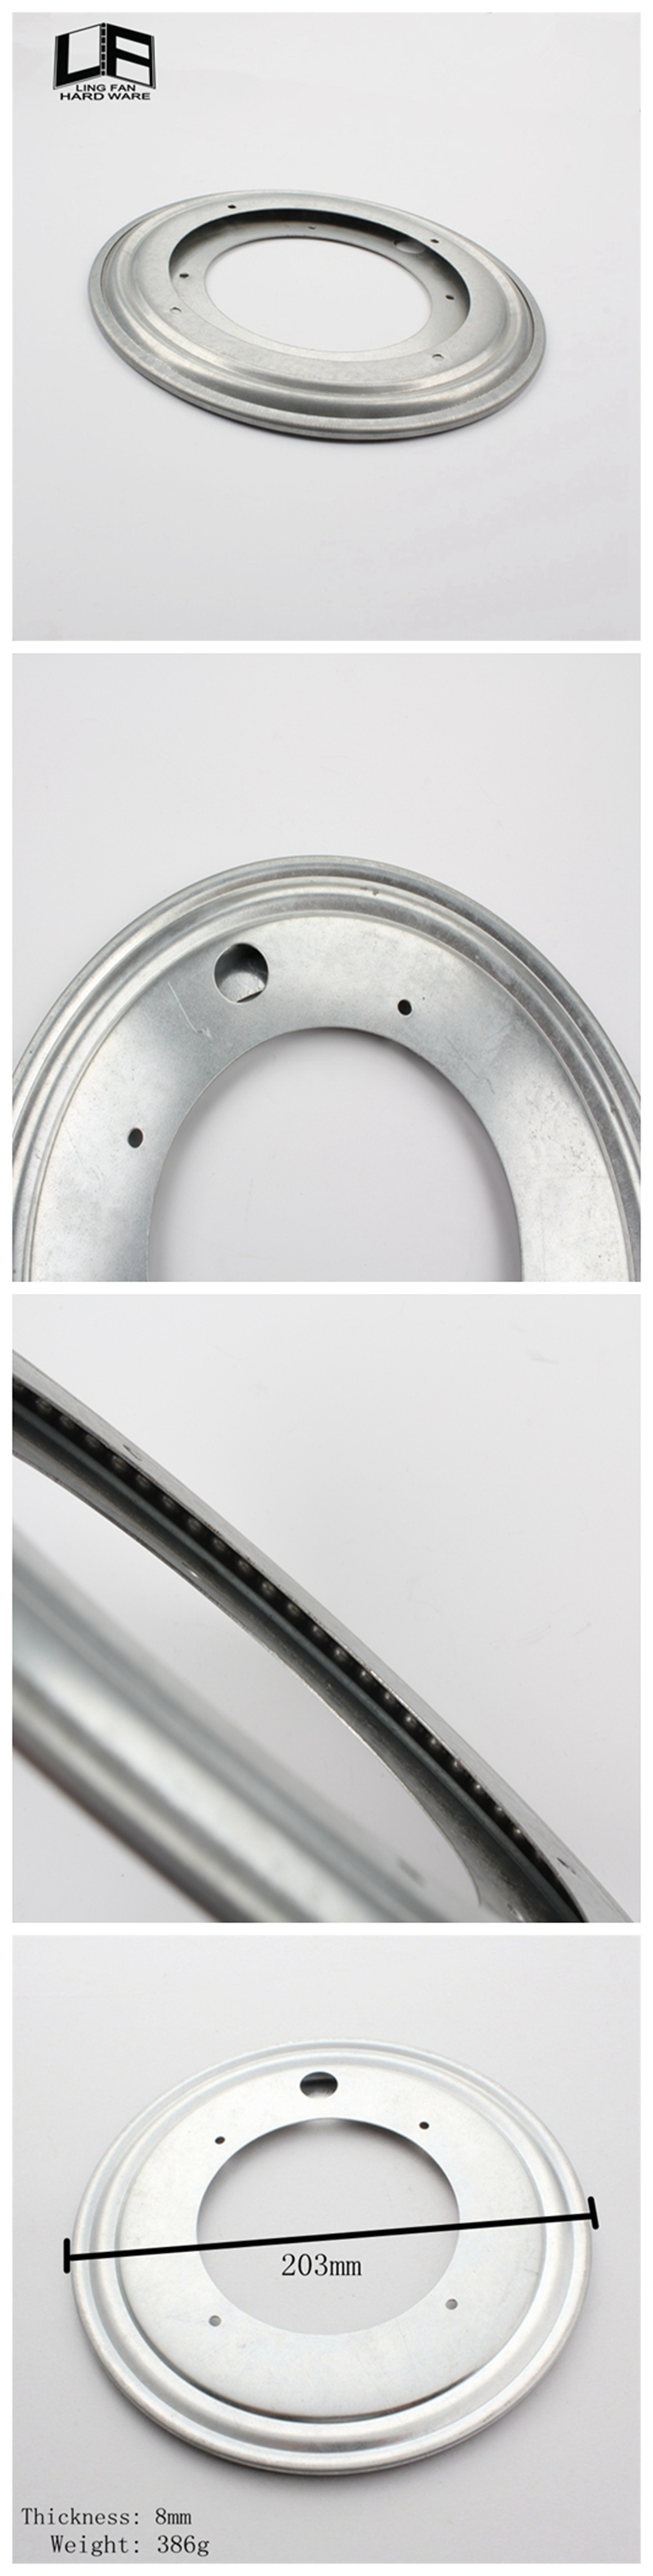 Most Popular 8 Inch Lazy Susan Hardware Lowes Rotating Swivel Plate  Turntable Bearing